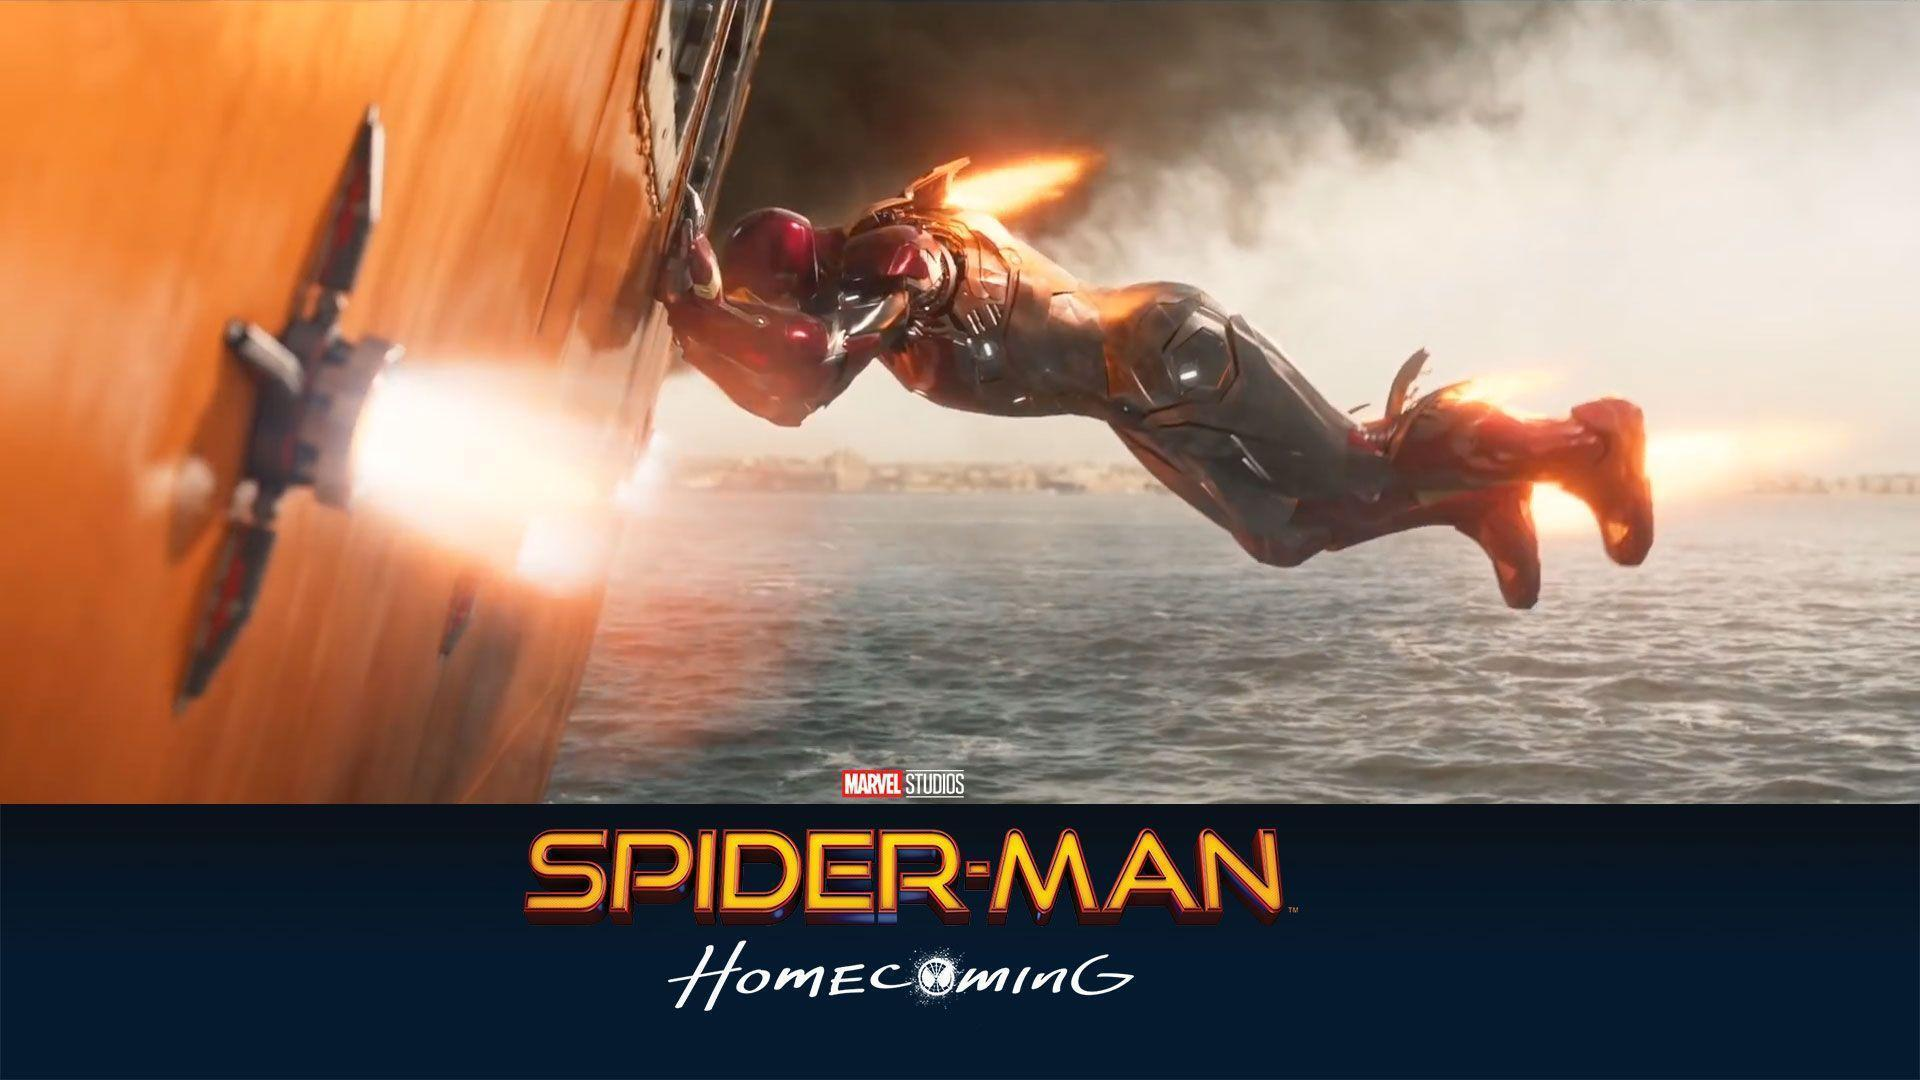 Spider-Man: Homecoming Wallpapers - Wallpaper Cave